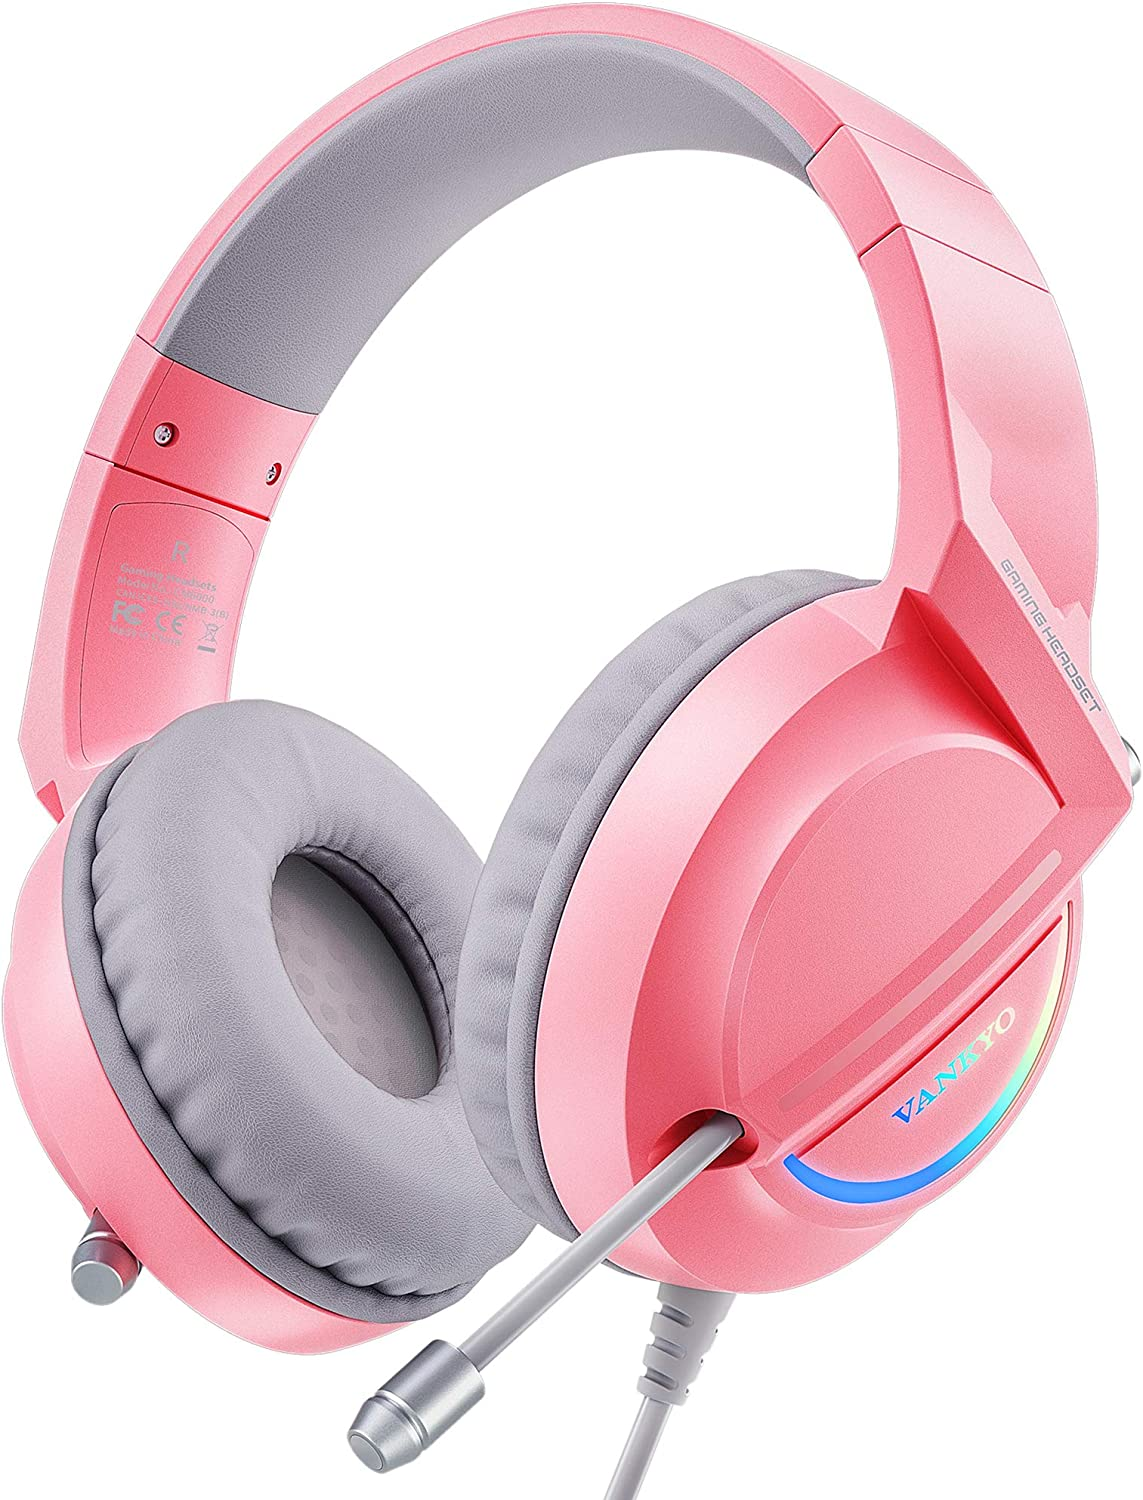 VANKYO Pink Gaming Headset for PS4, PS5, PC, Nintendo Switch, Xbox One, Comfortable Earmuffs PS4 Headset with Noise Isolation Microphone & LED Light, PC Gaming Headphones in 7.1 Surround Sound